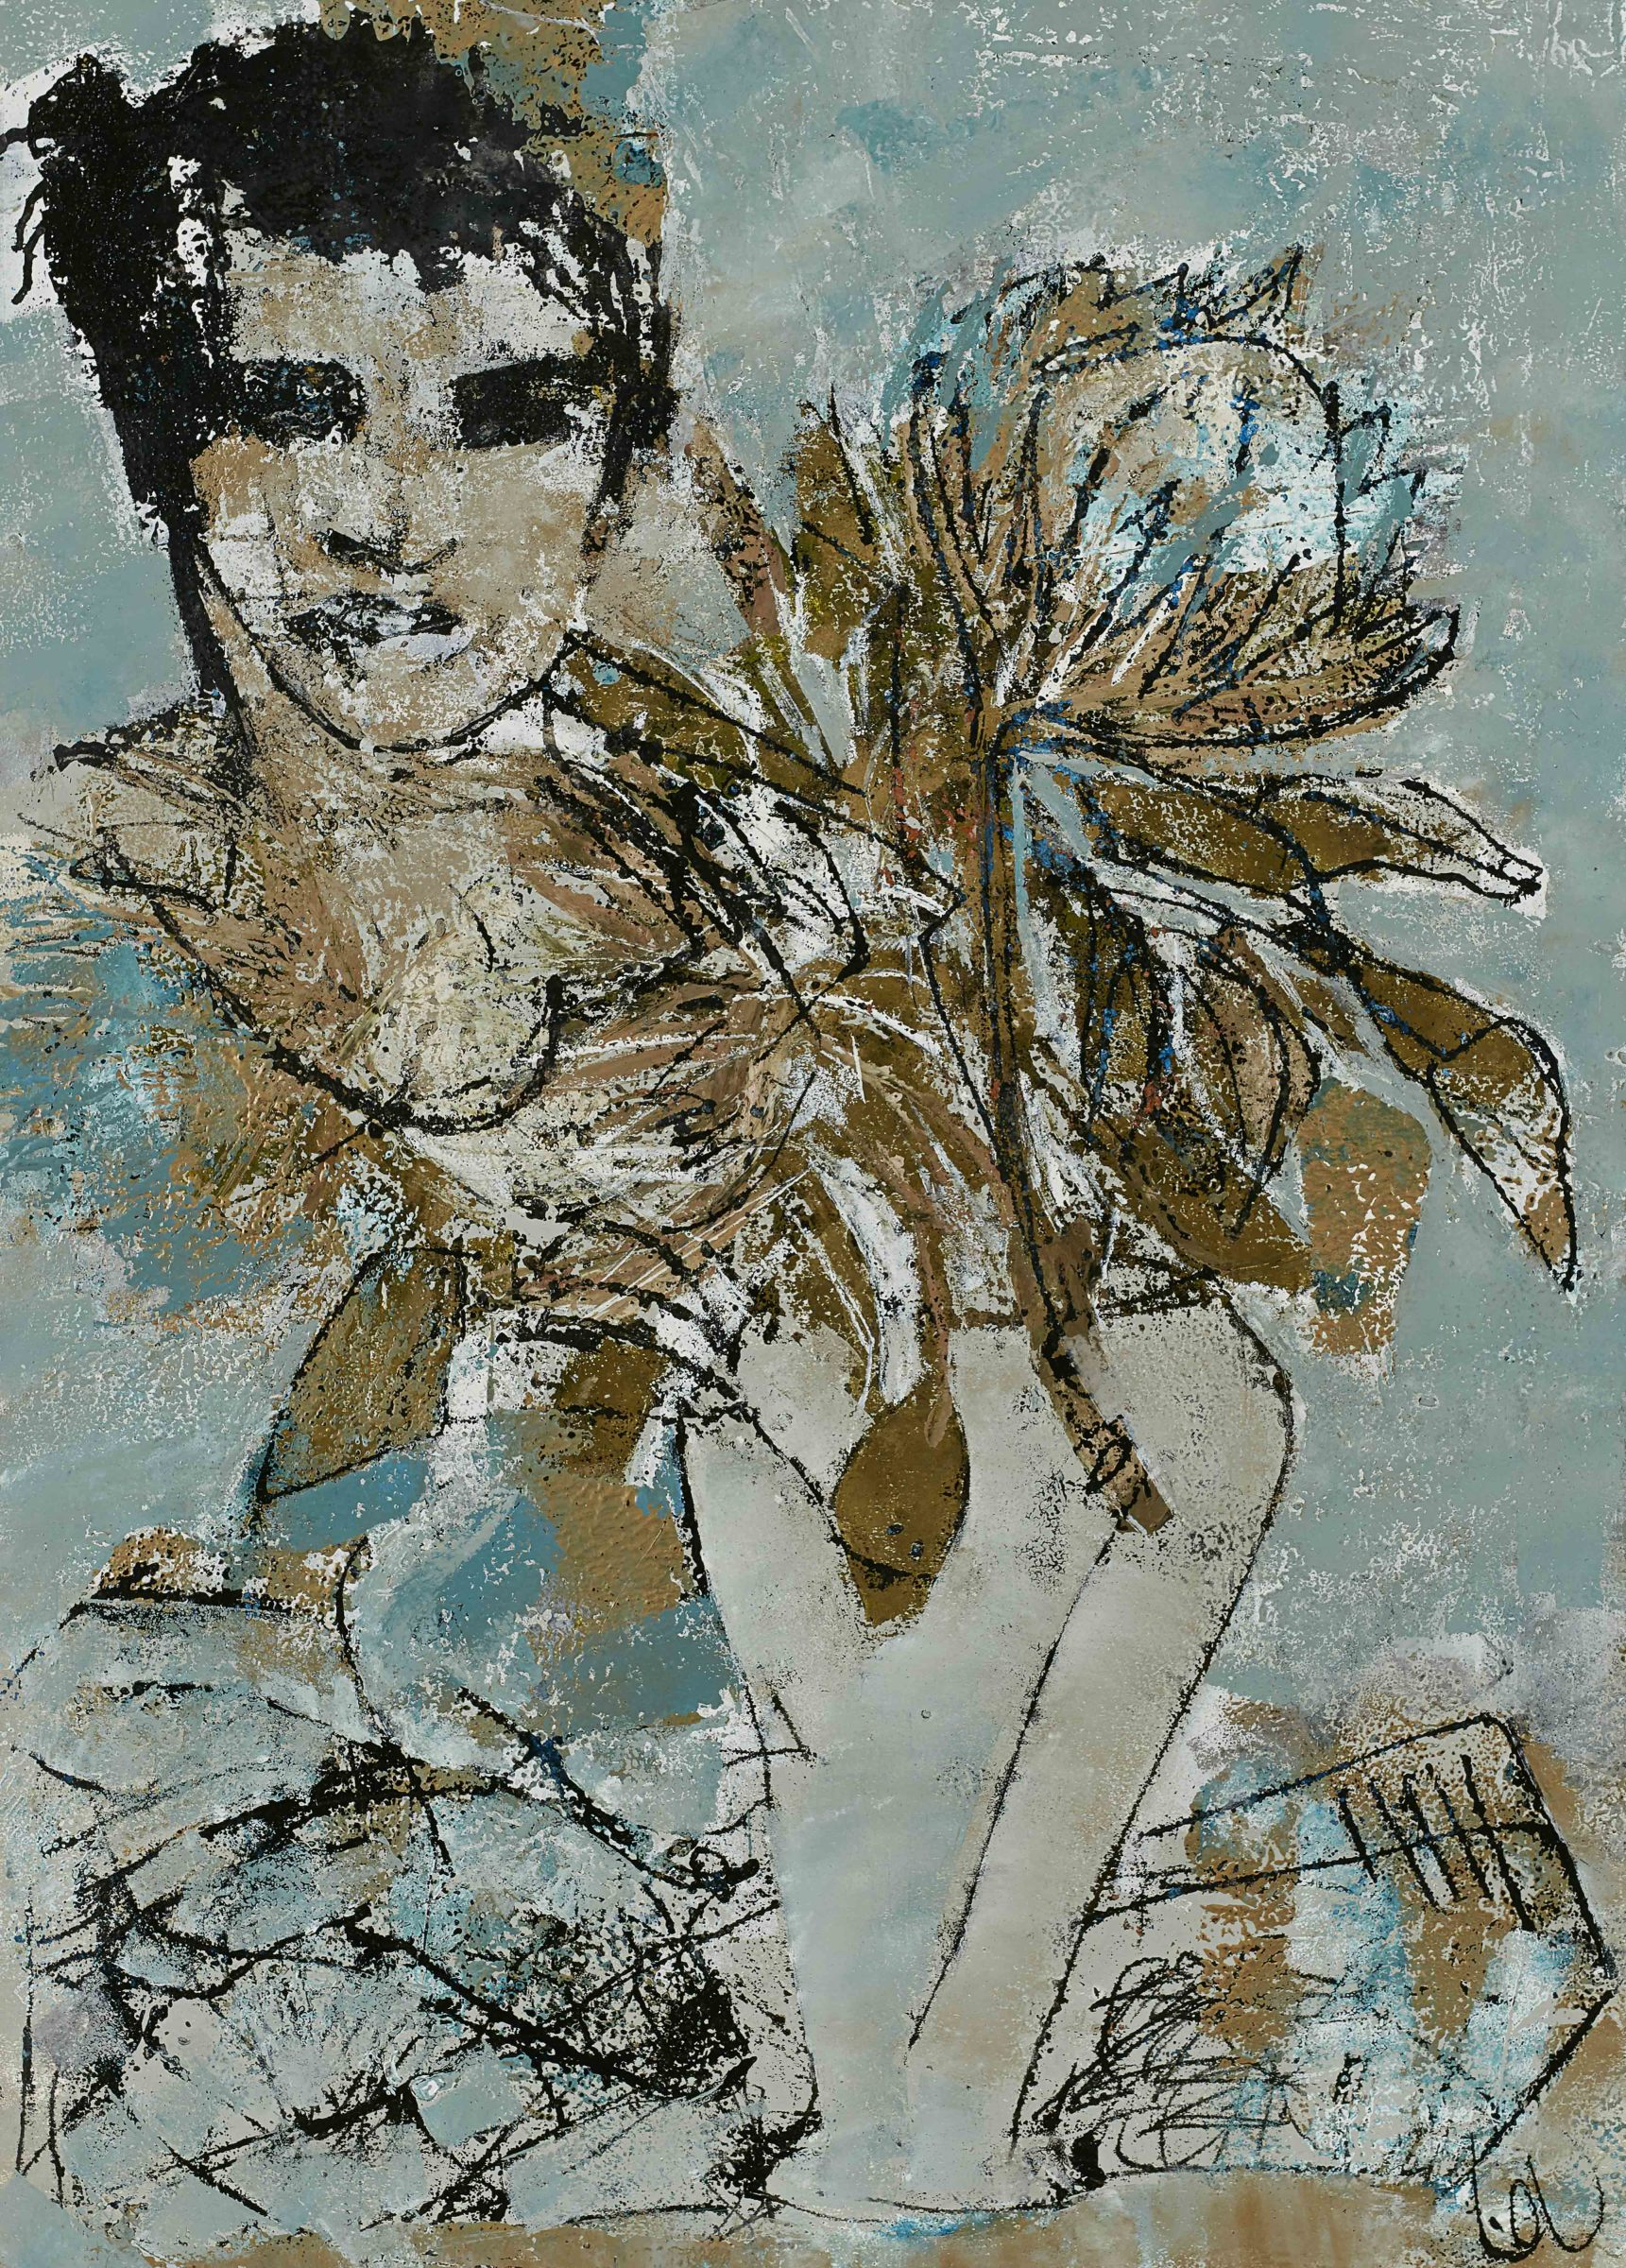 """<span class=""""link fancybox-details-link""""><a href=""""/exhibitions/12/works/artworks4308/"""">View Detail Page</a></span><div class=""""artist""""><strong>Louise Almon</strong></div><div class=""""title""""><em>Gift in Blue</em>, 2017</div><div class=""""medium"""">Printing ink on Fabriano</div><div class=""""dimensions"""">700x500mm</div>"""